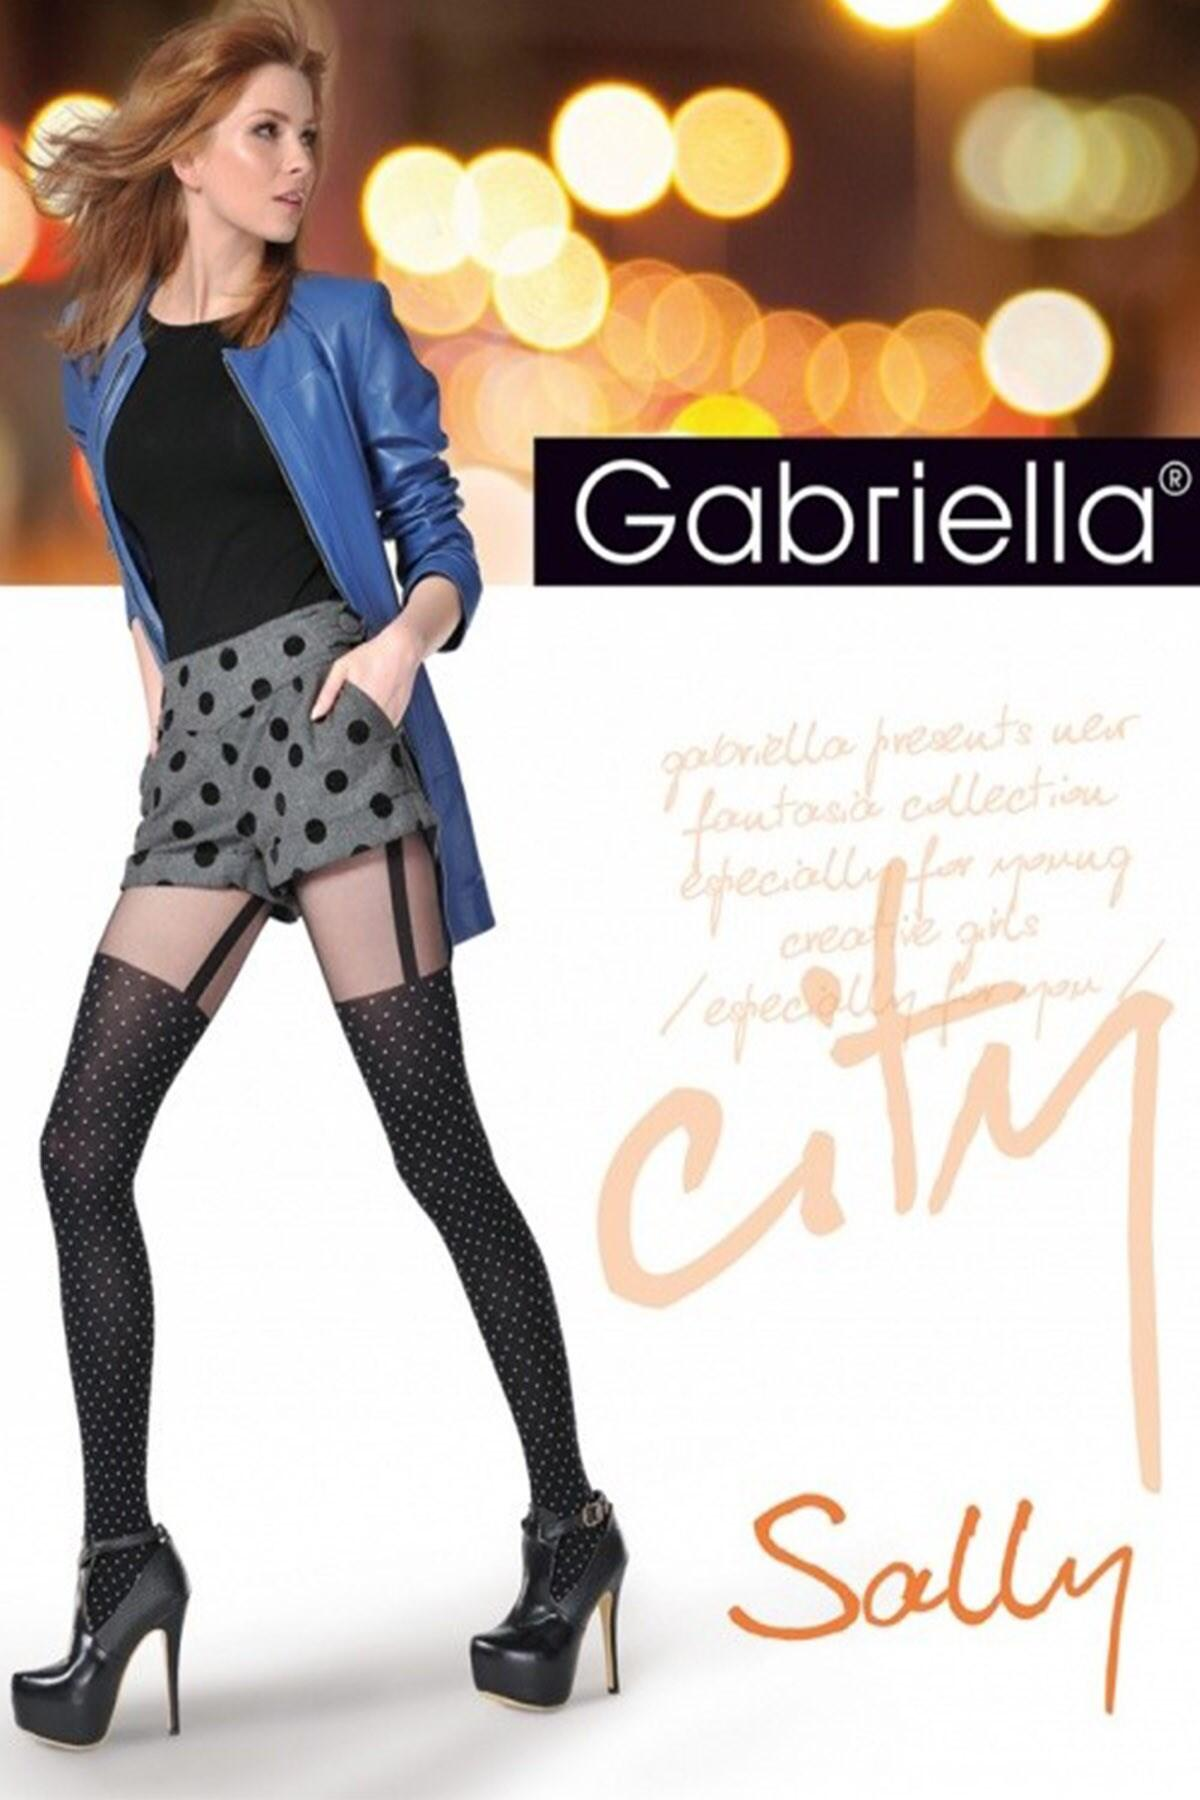 Gabriella City Sally Tights  - Black Spot